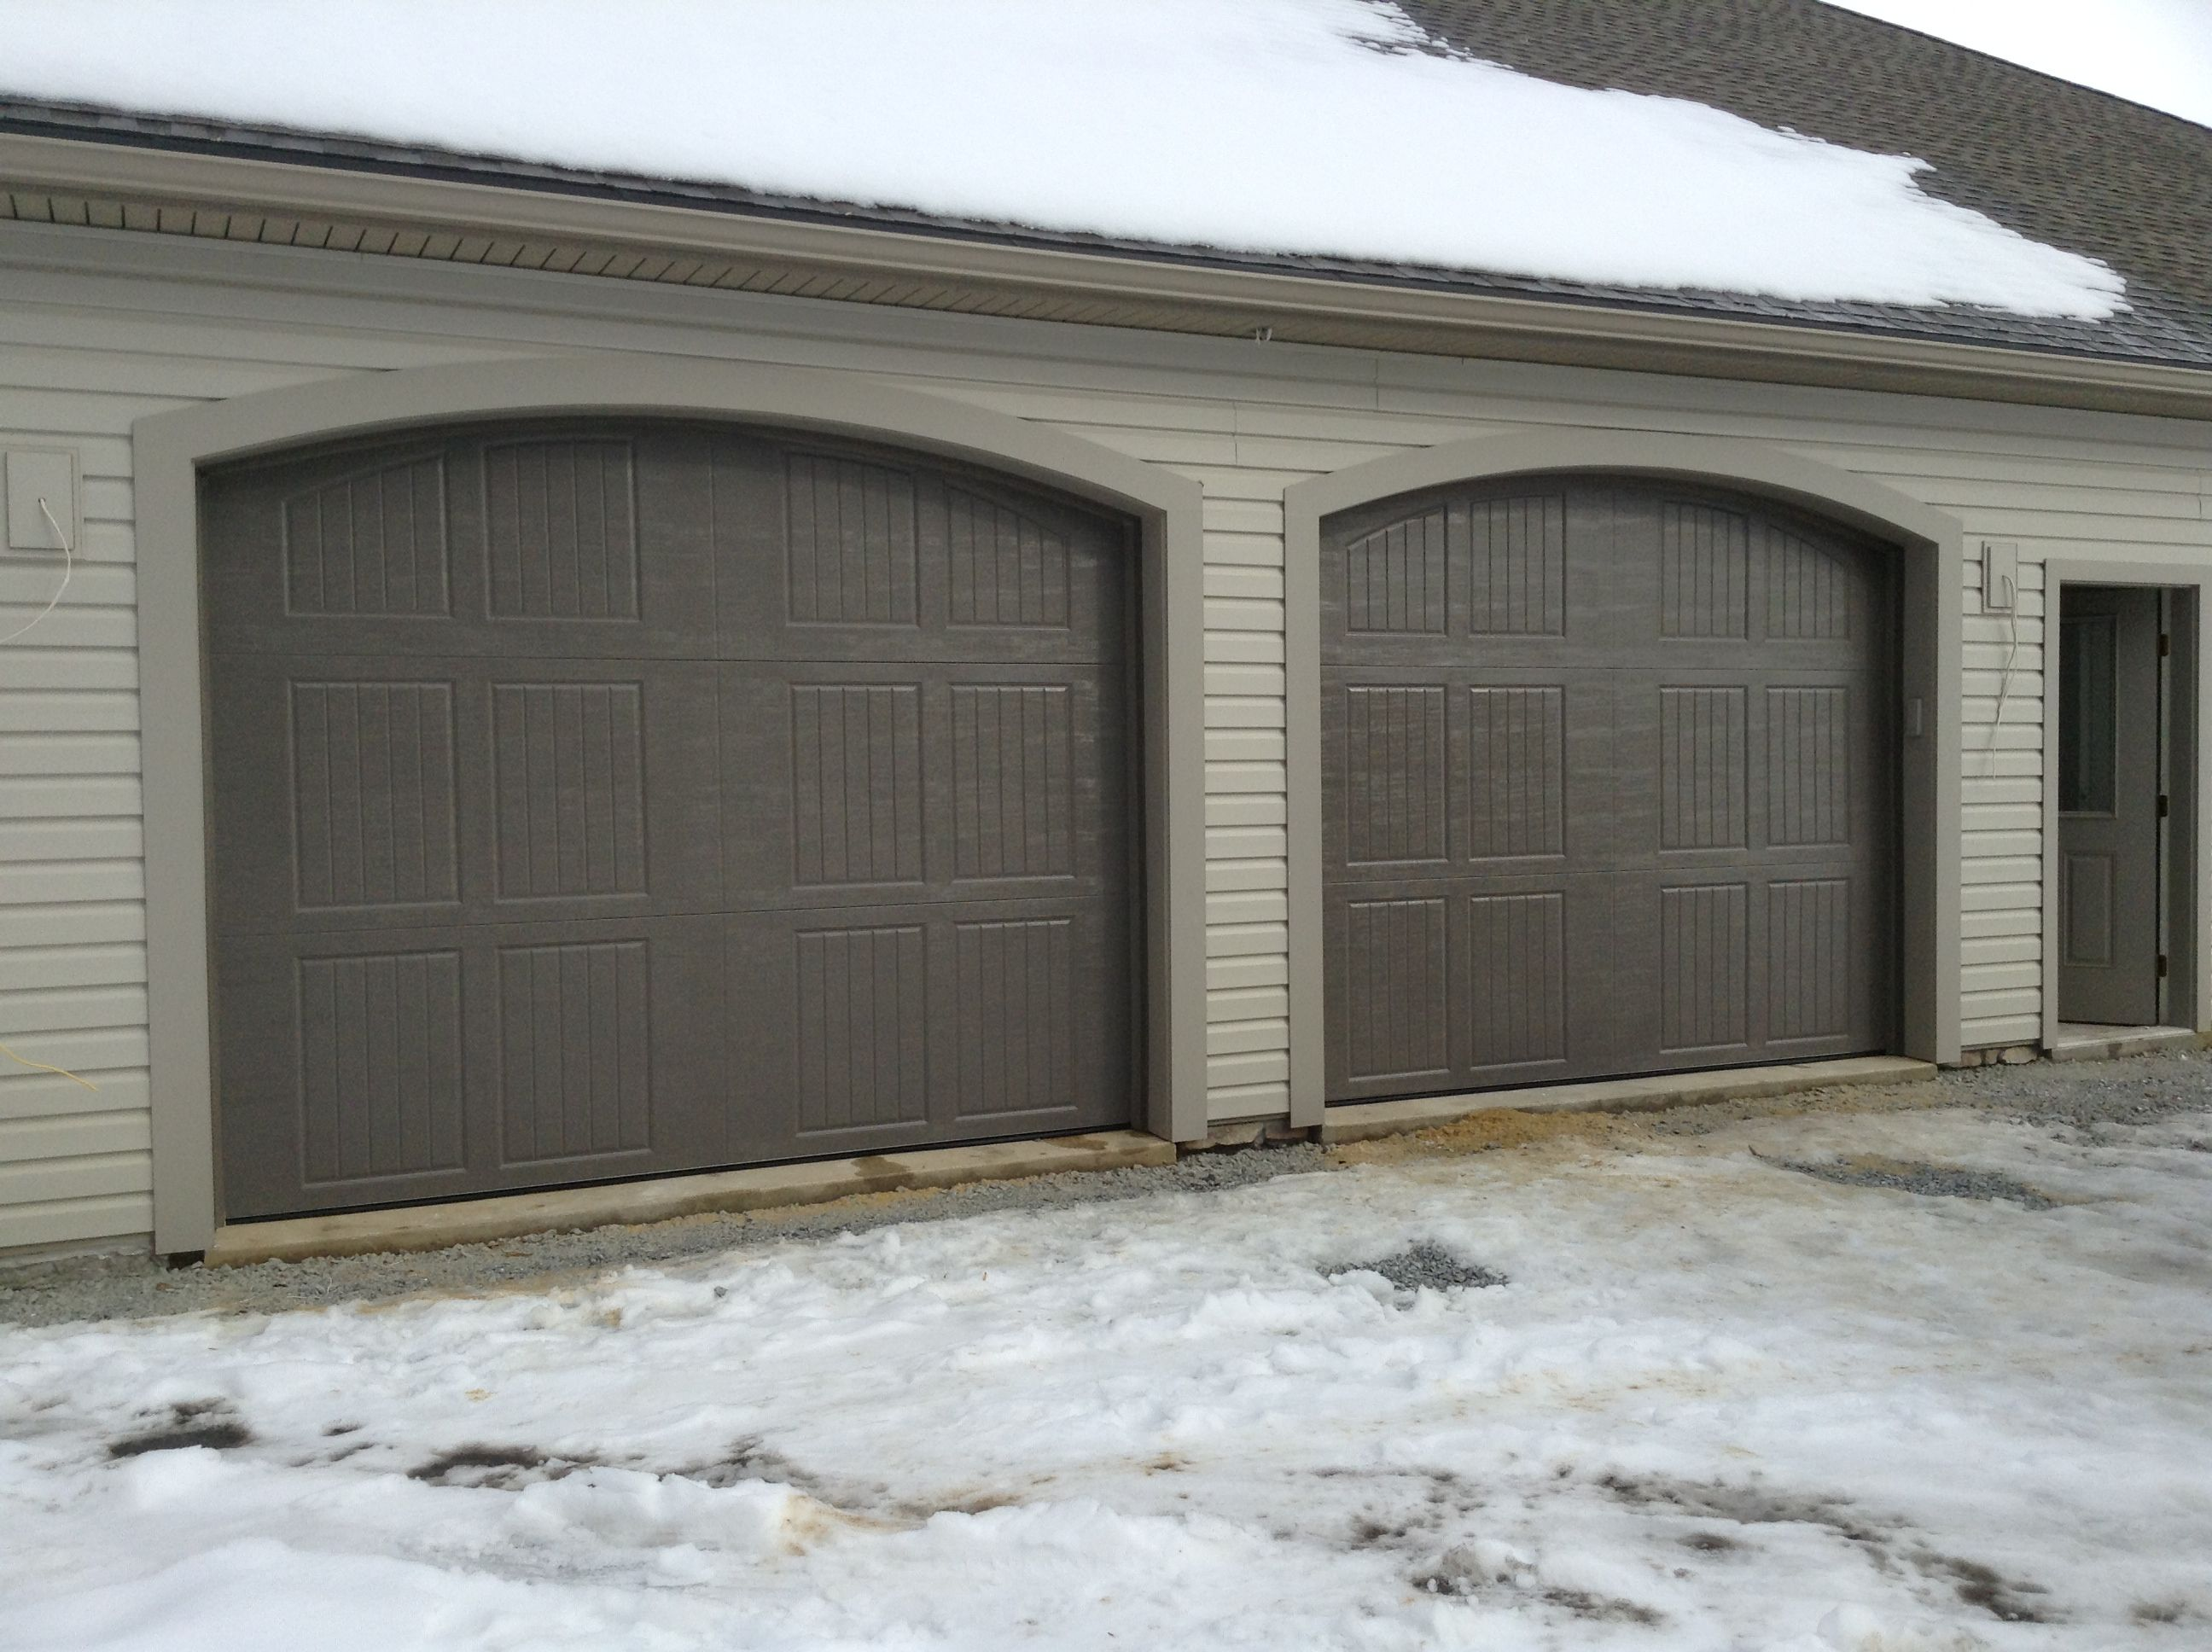 1936 #576974 Garages image Amar Garage Doors 37332592